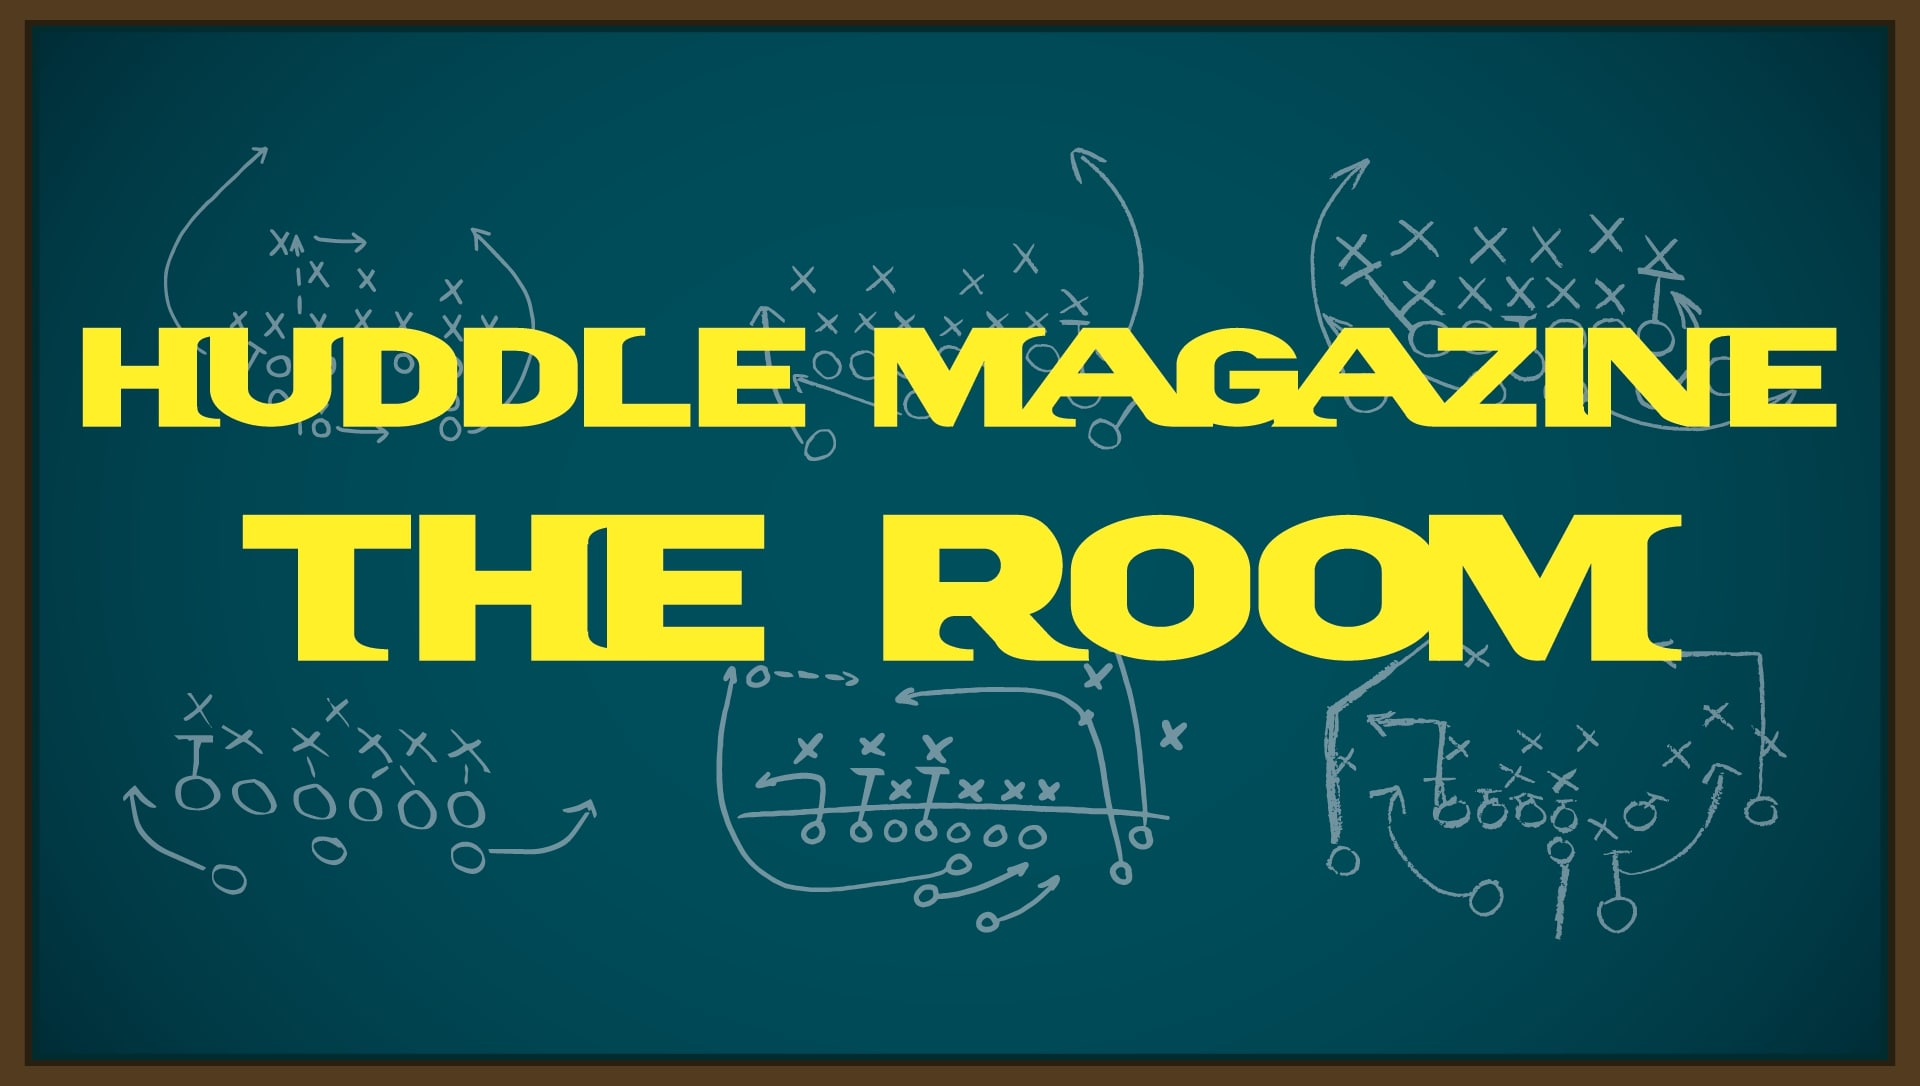 The Room #11 - analisi tattica delle partite